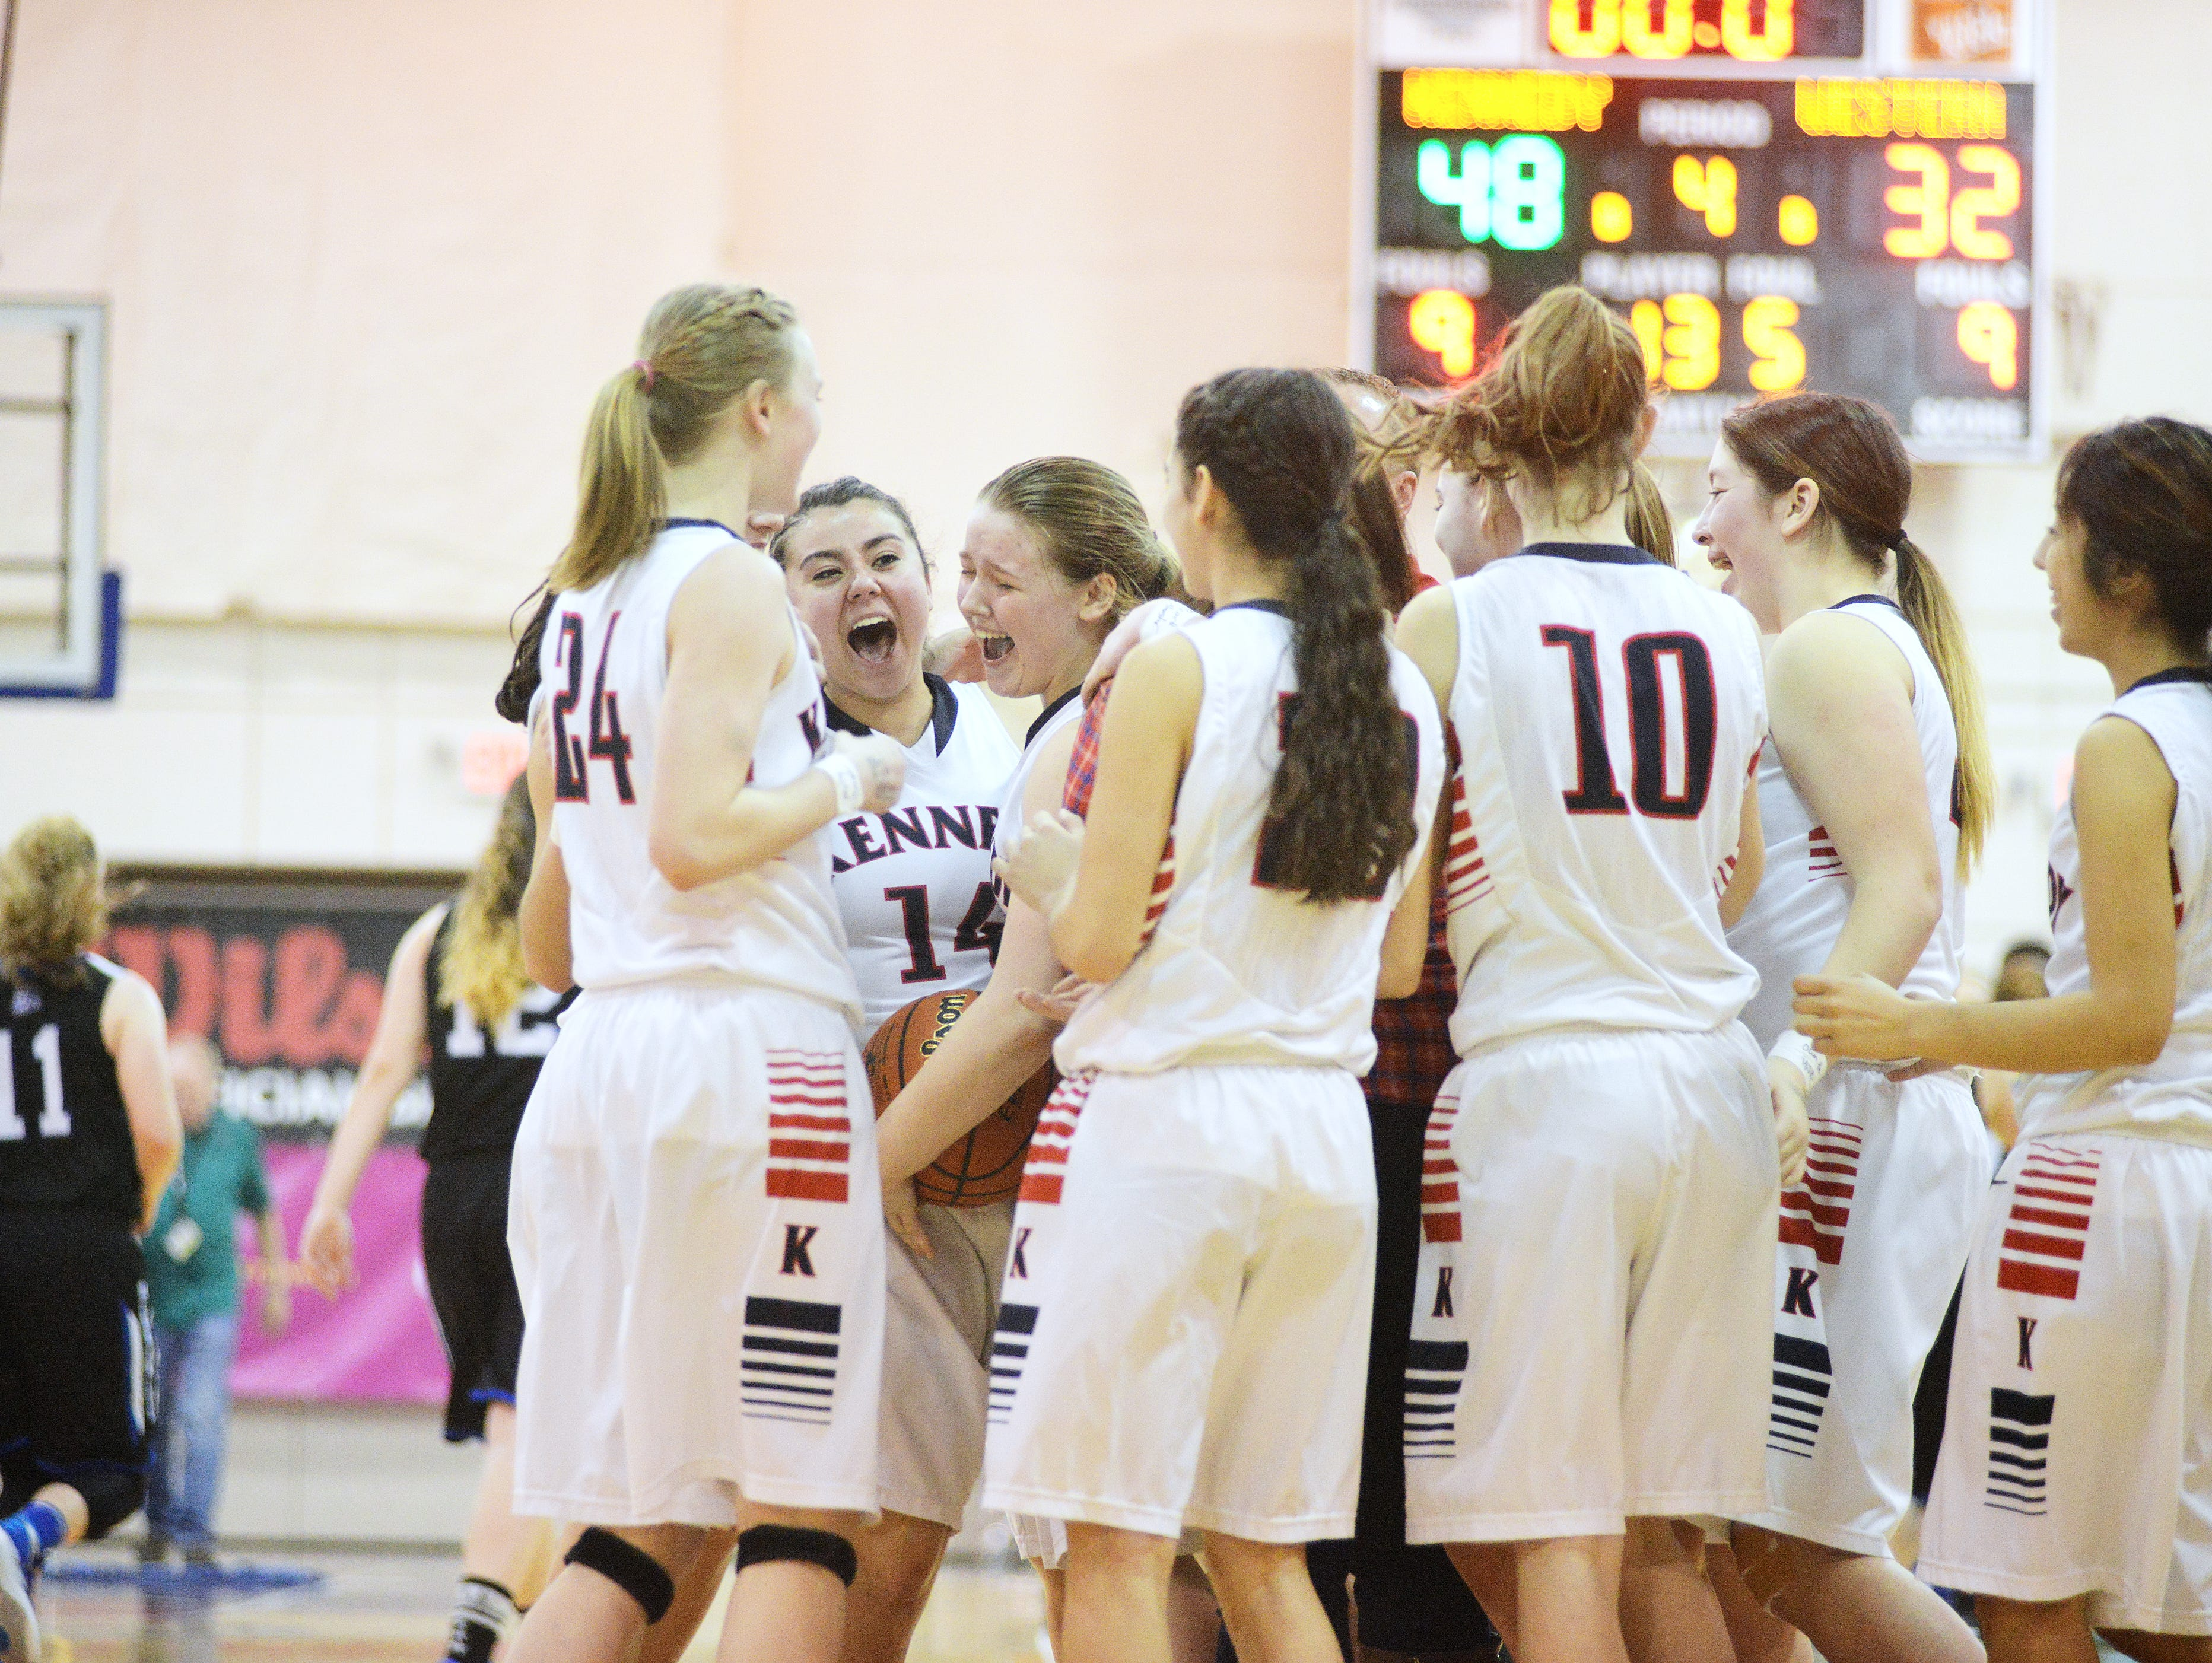 The Kennedy Trojans celebrate their 48-32 win against Western Mennonite on Friday in the state 2A basketball tournament in Pendleton.